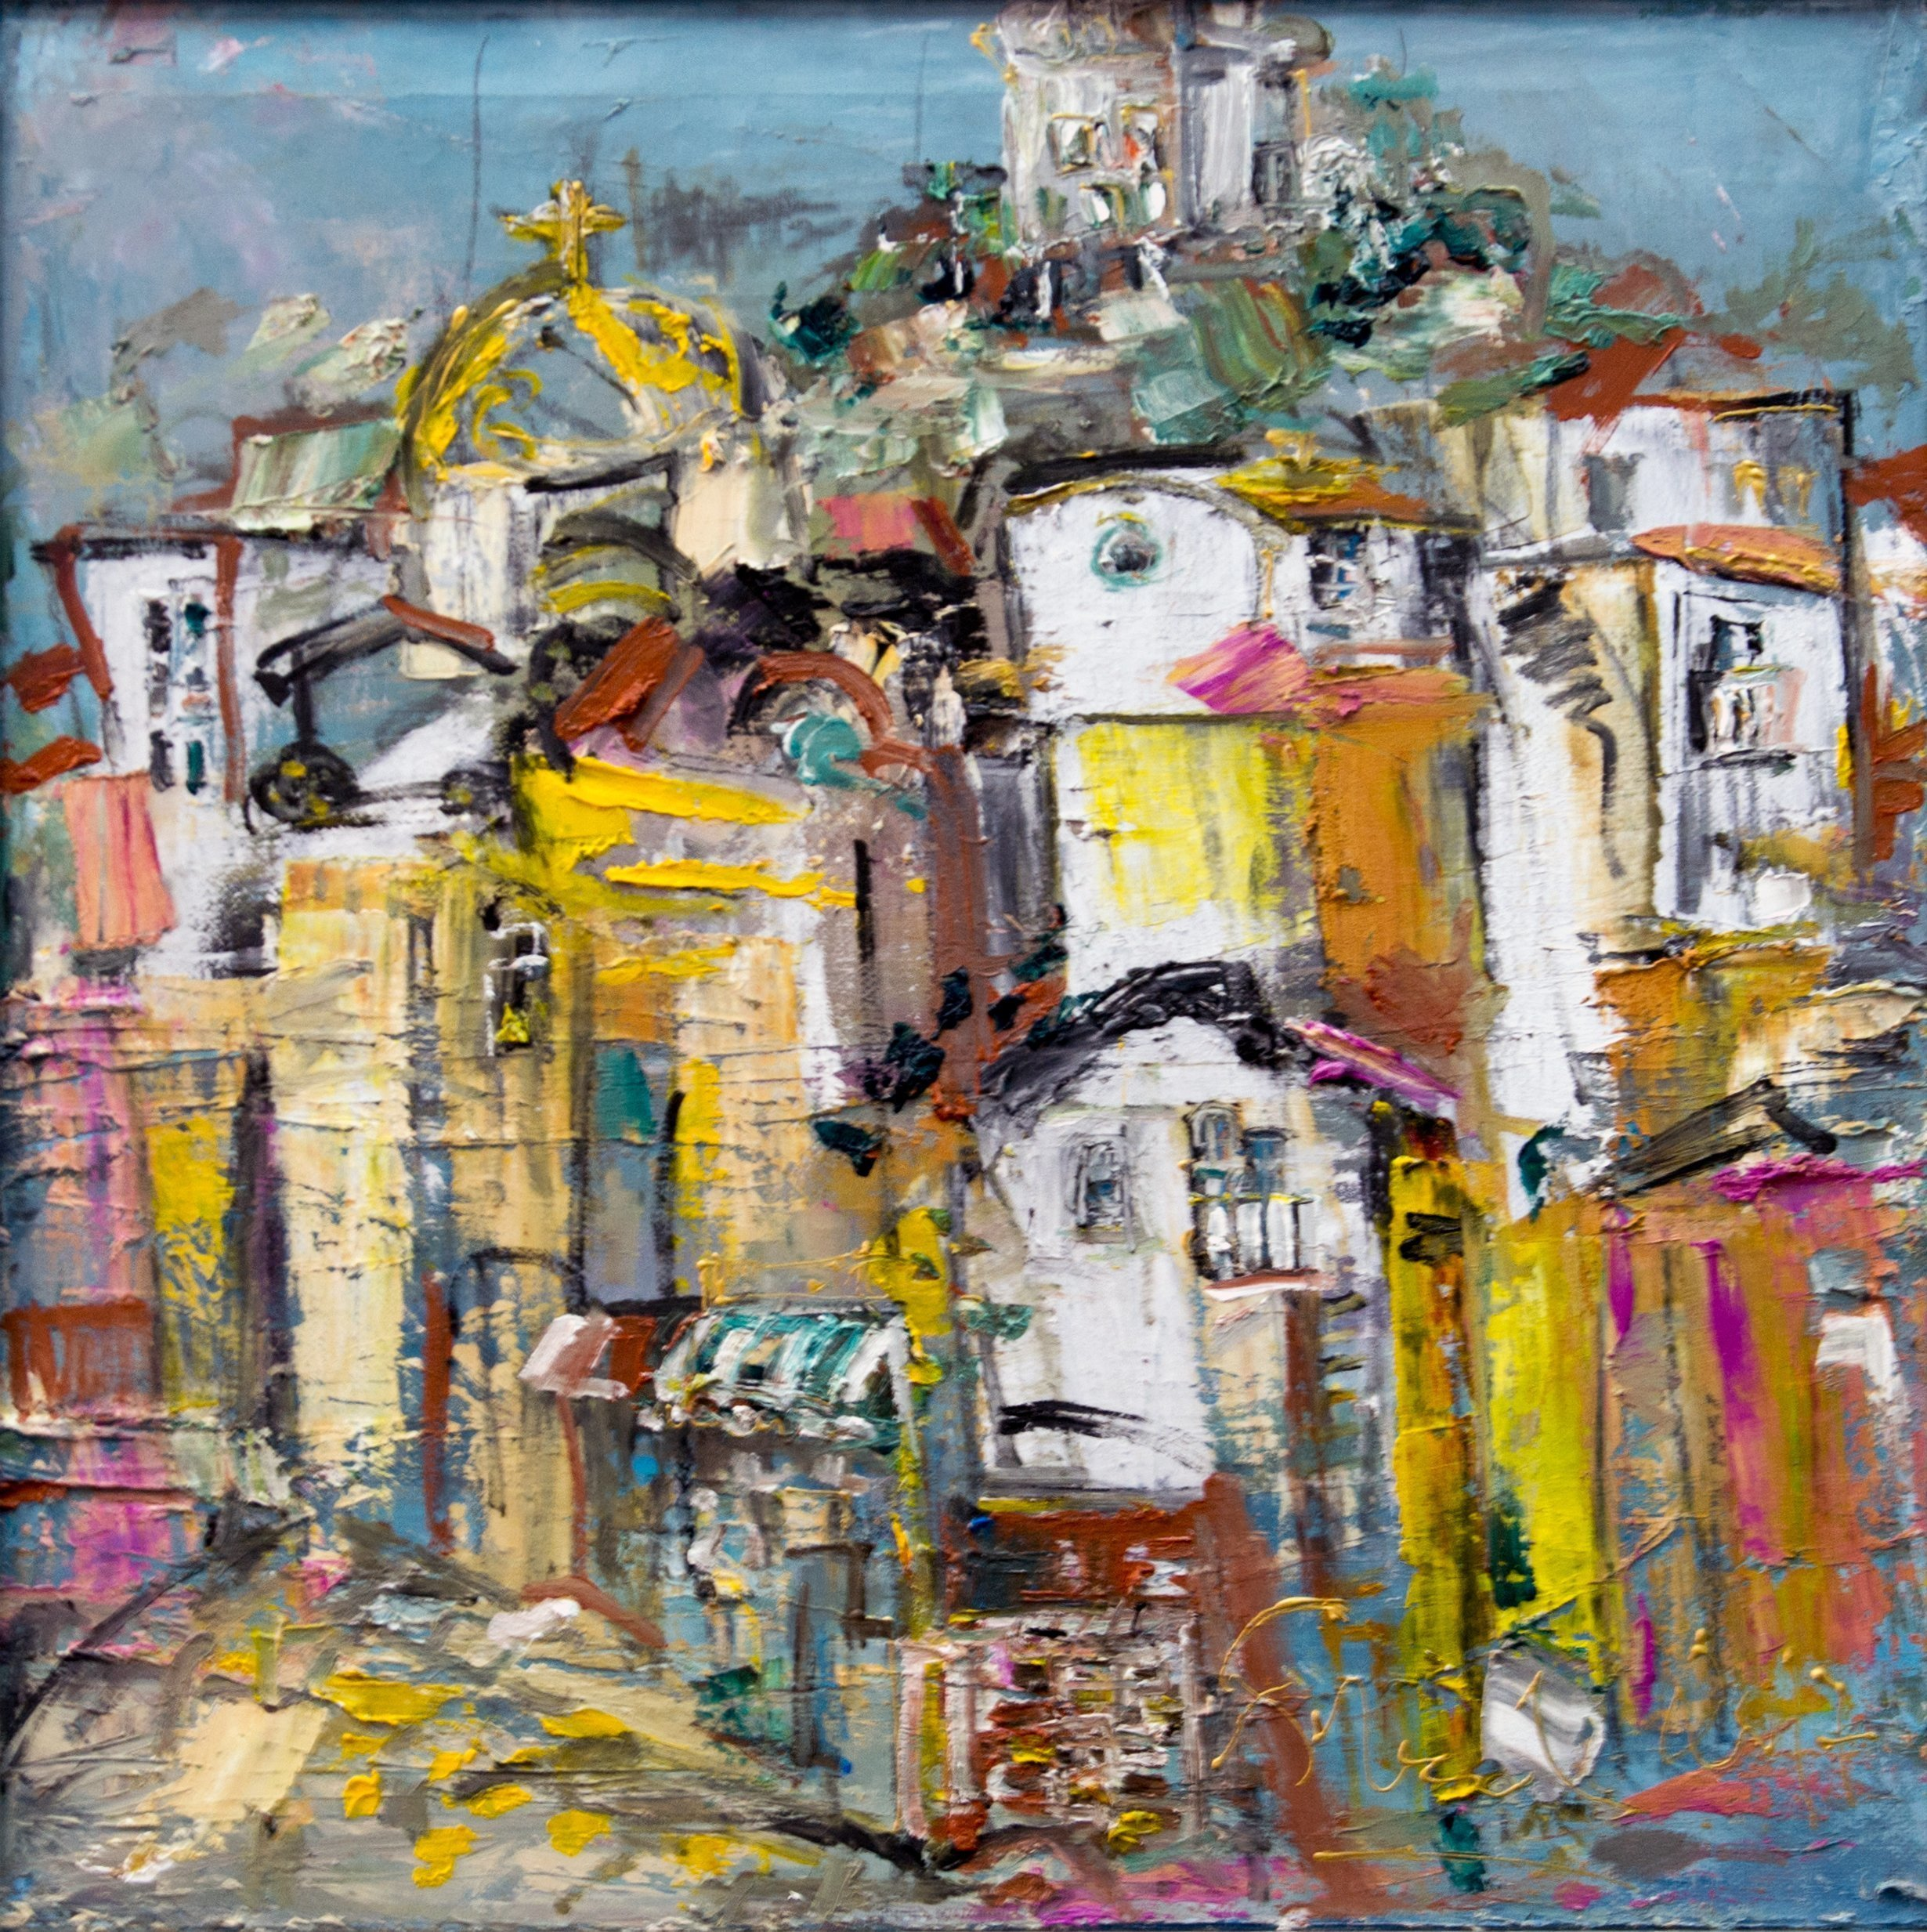 Svetla Andonova: 'plovdiv 32 2017', 2017 Oil Painting, Architecture. Artist Description: Category	Oil paintingSubject	Landscapes, sea and skySubstrate	CanvasMaterials	Oil colors on canvasStyle	ImpressionisticDimensions	47 x 47 x 6 cm  framed    40 x 40 x 4 cm  unframed    40 x 40 cm  actual image size Framing	This artwork is sold framed...